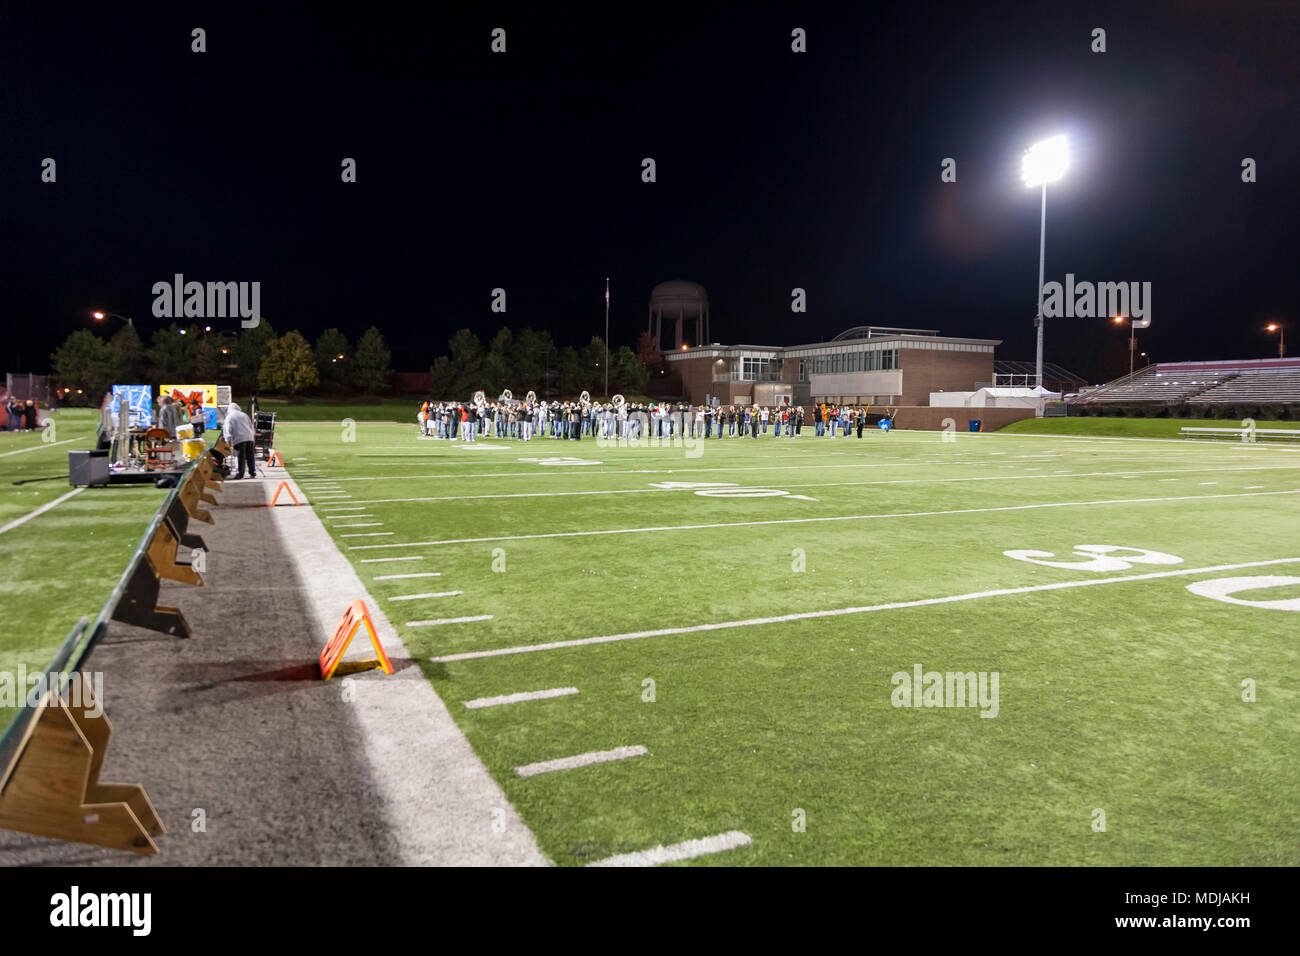 An evening rehearsal in a local football stadium - Stock Image